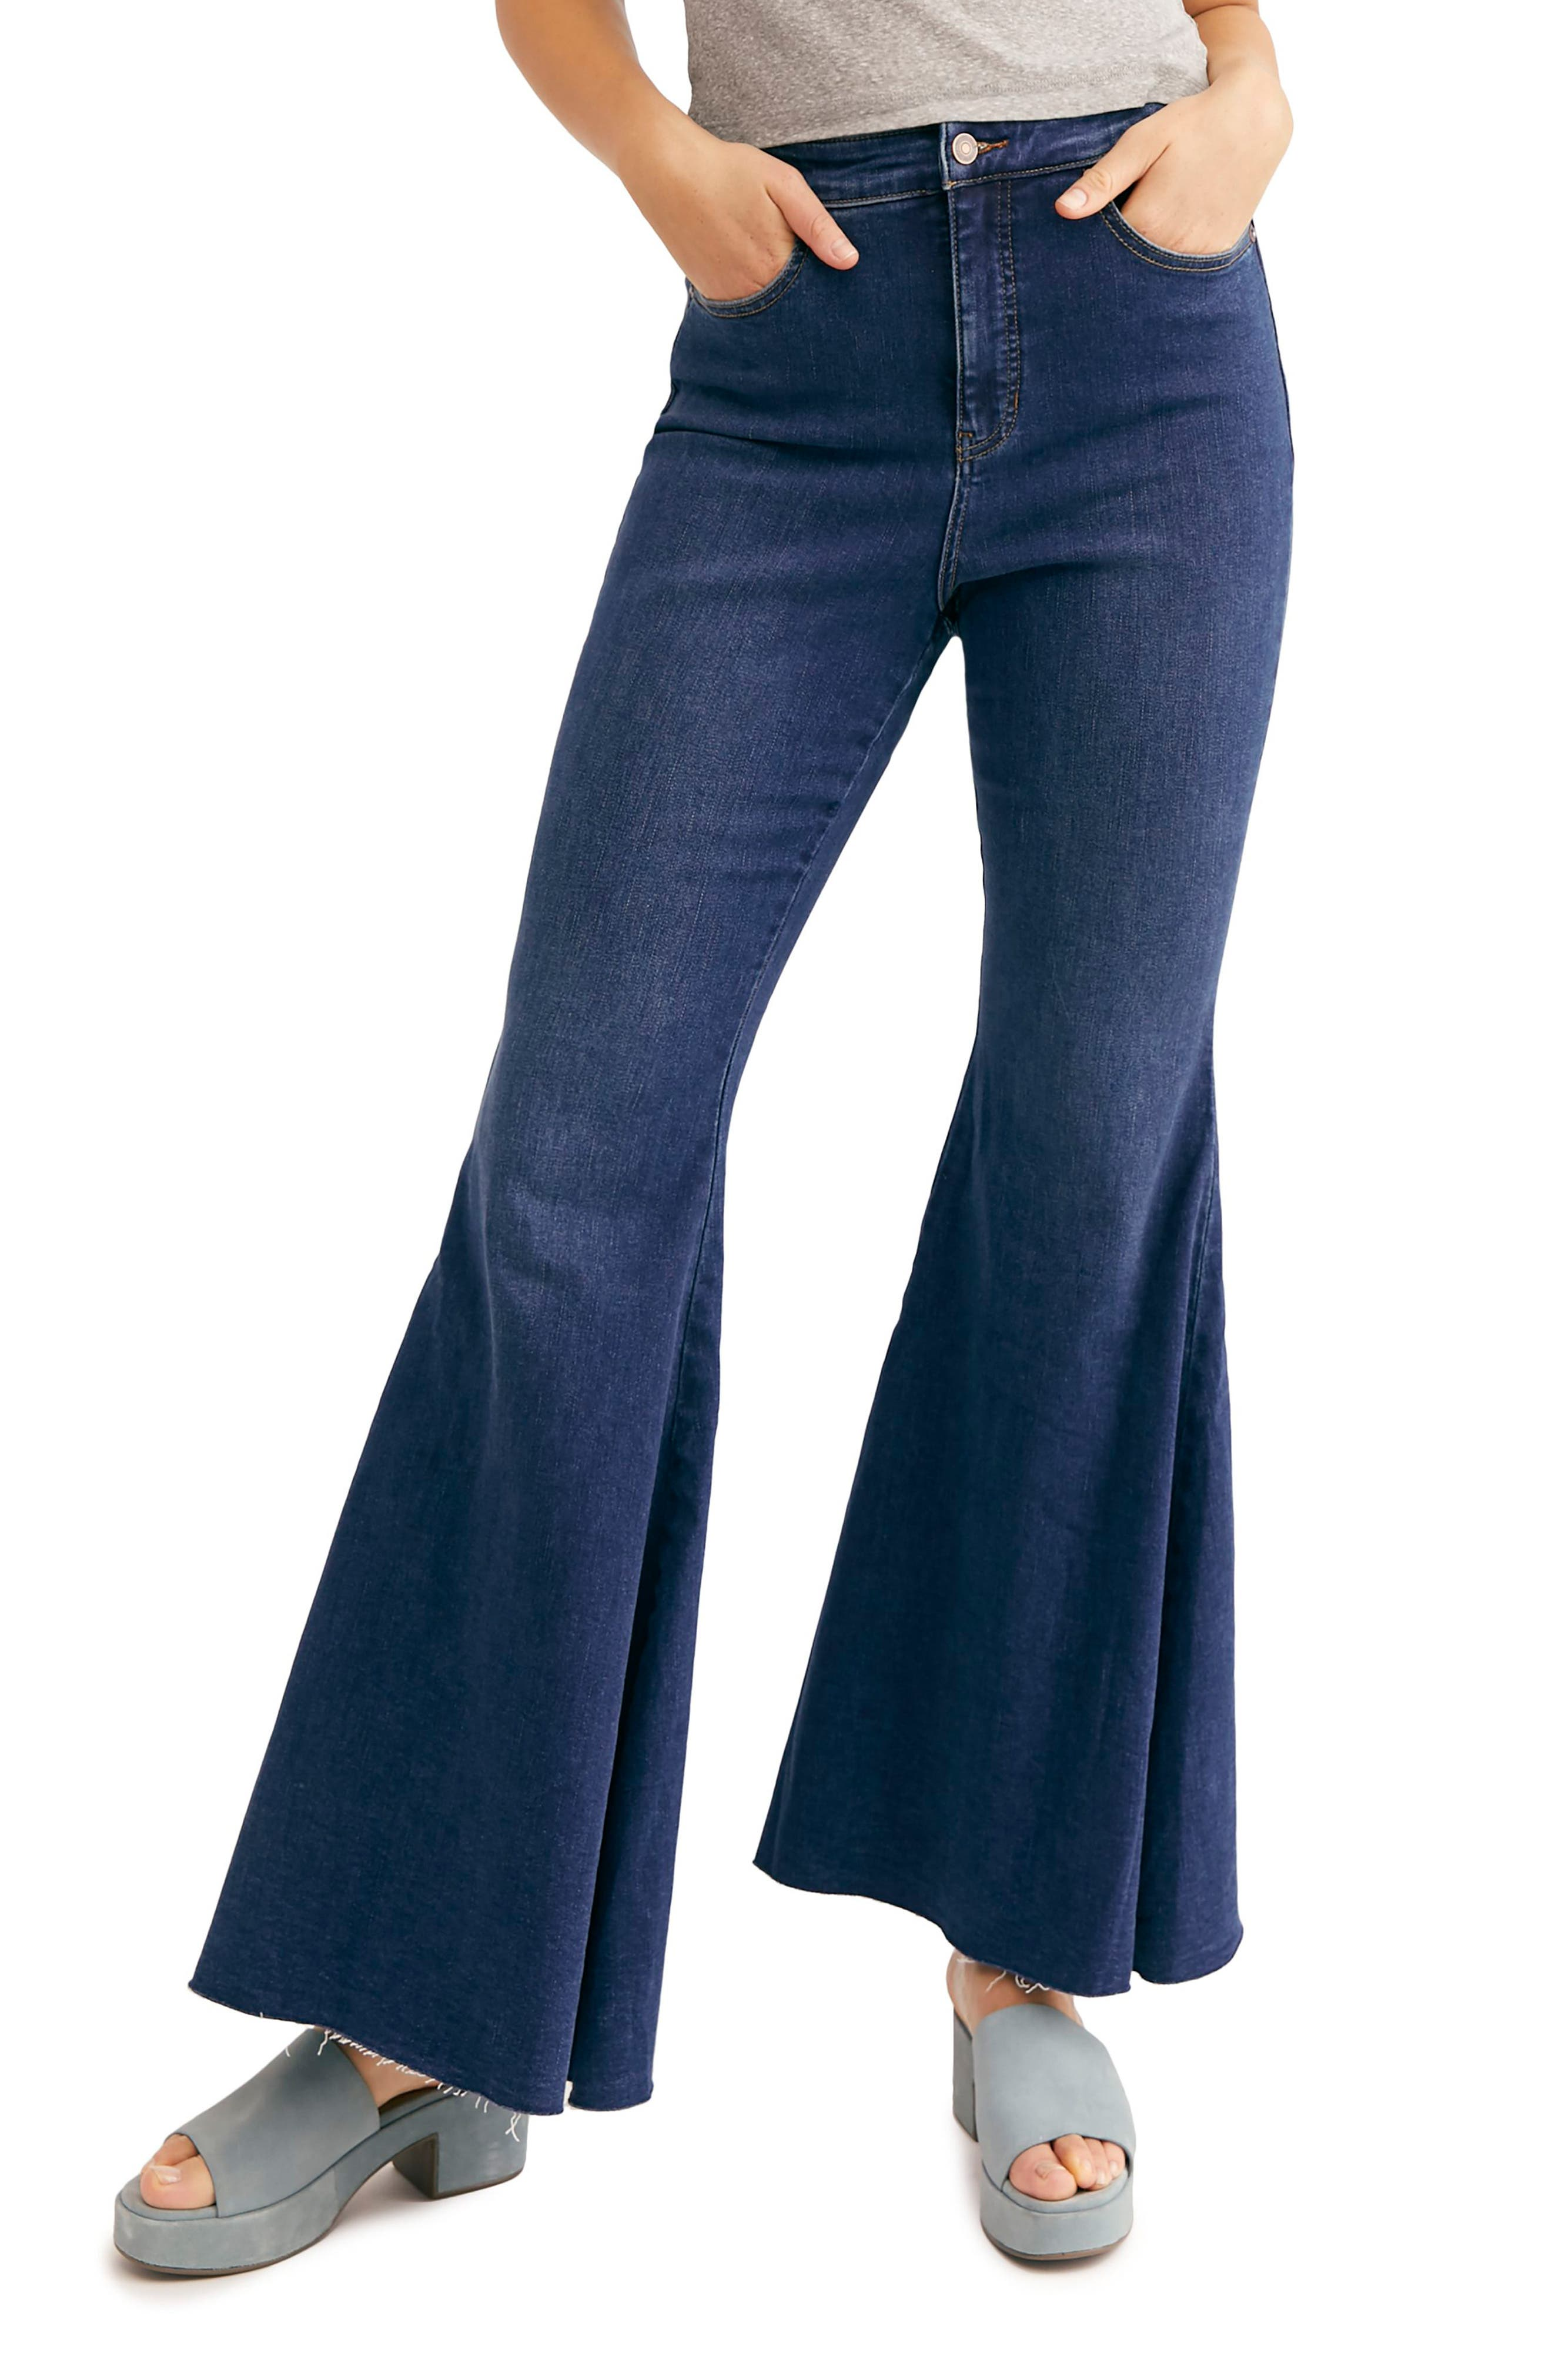 60s – 70s Pants, Jeans, Hippie, Bell Bottoms, Jumpsuits Womens Crvy By Free People Ma Cherie High Waist Flare Jeans Size 26 - Blue $98.00 AT vintagedancer.com